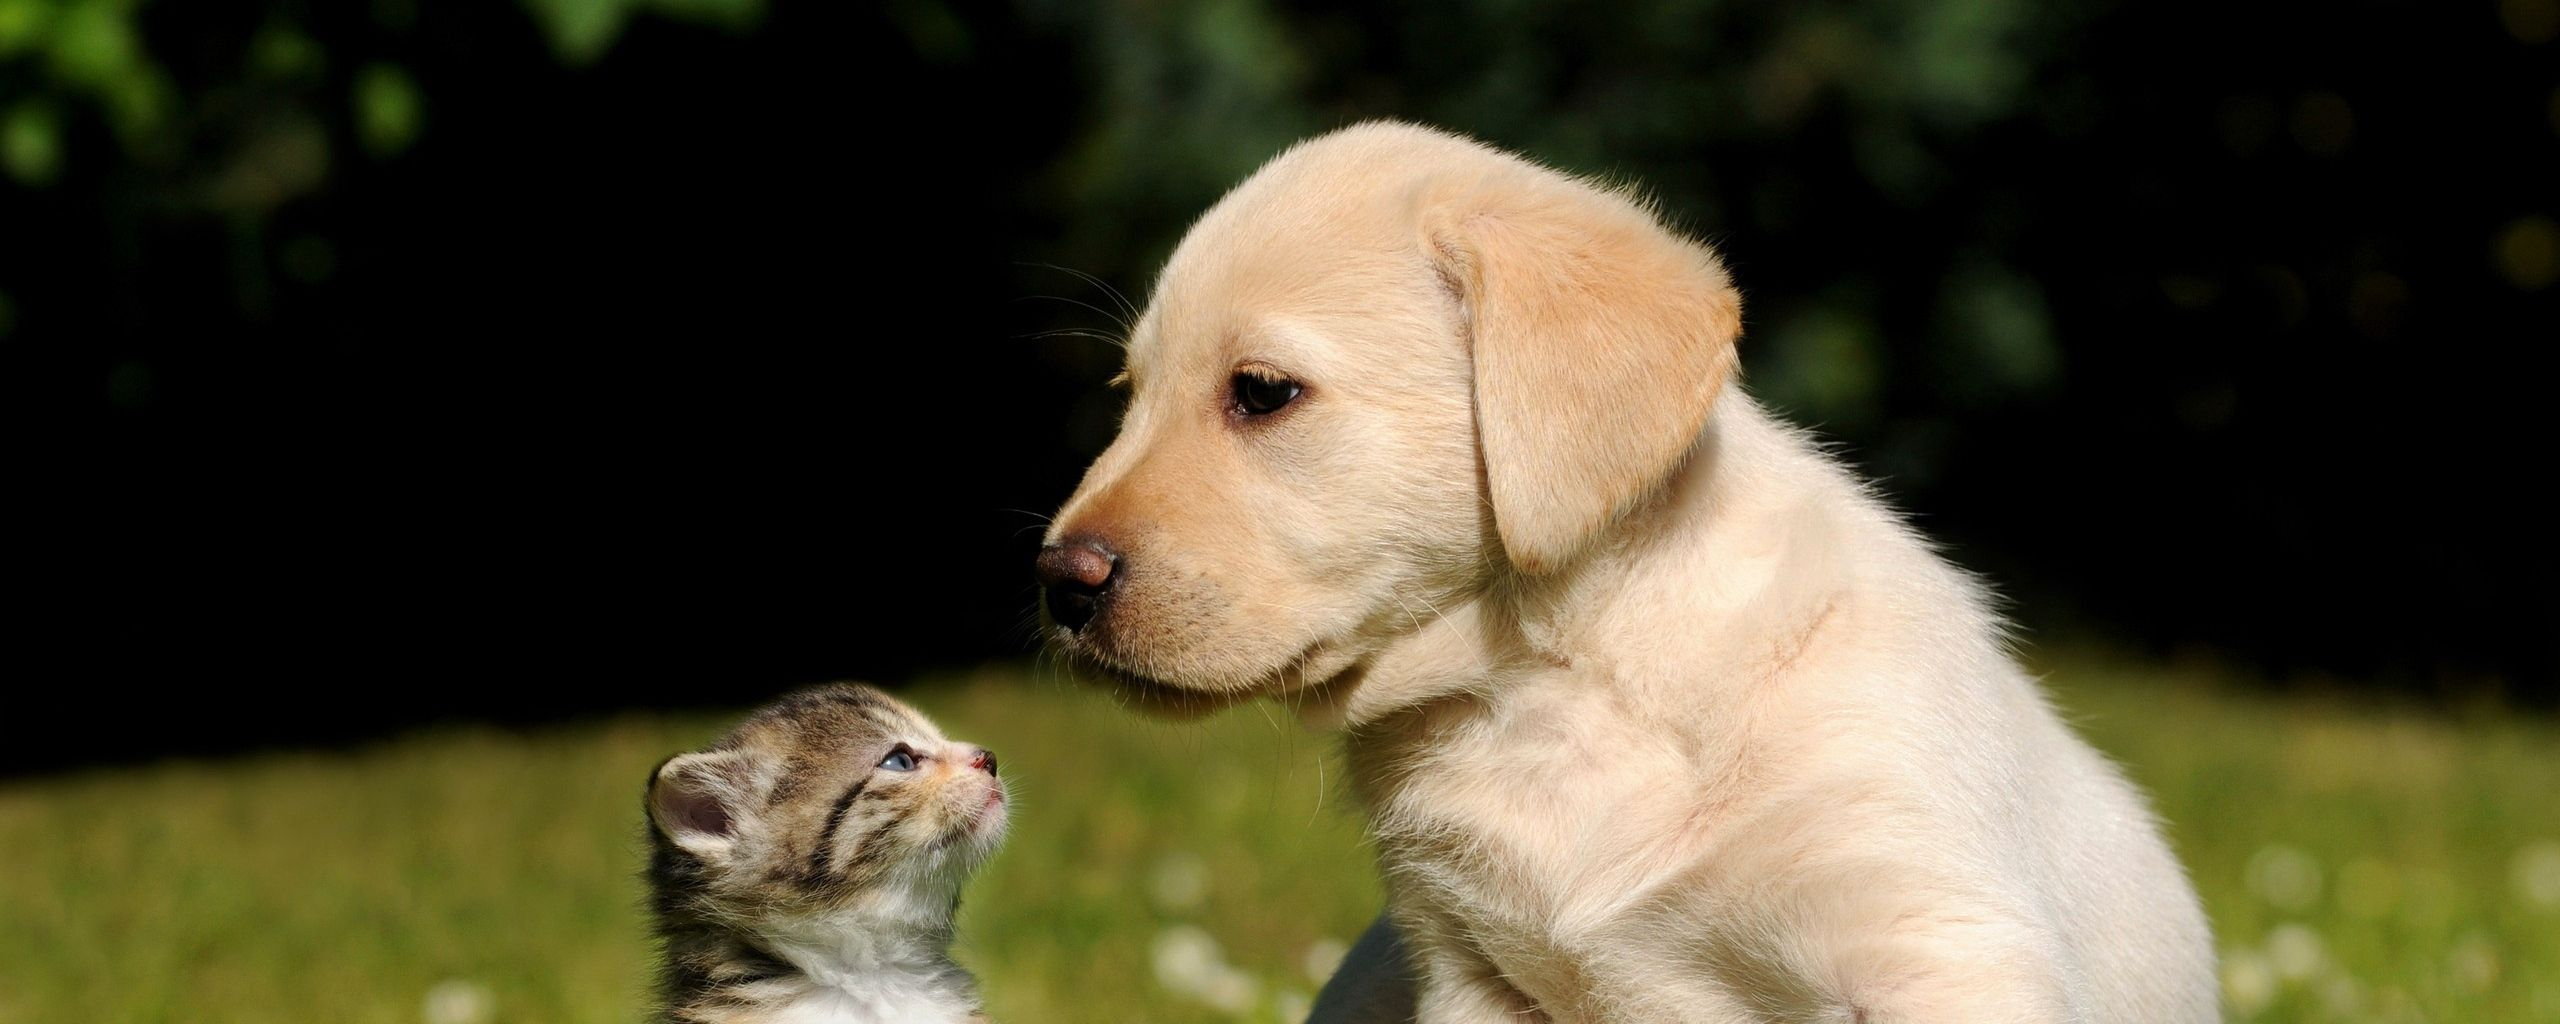 Pin by tom hasil on best friends pinterest dog and cat